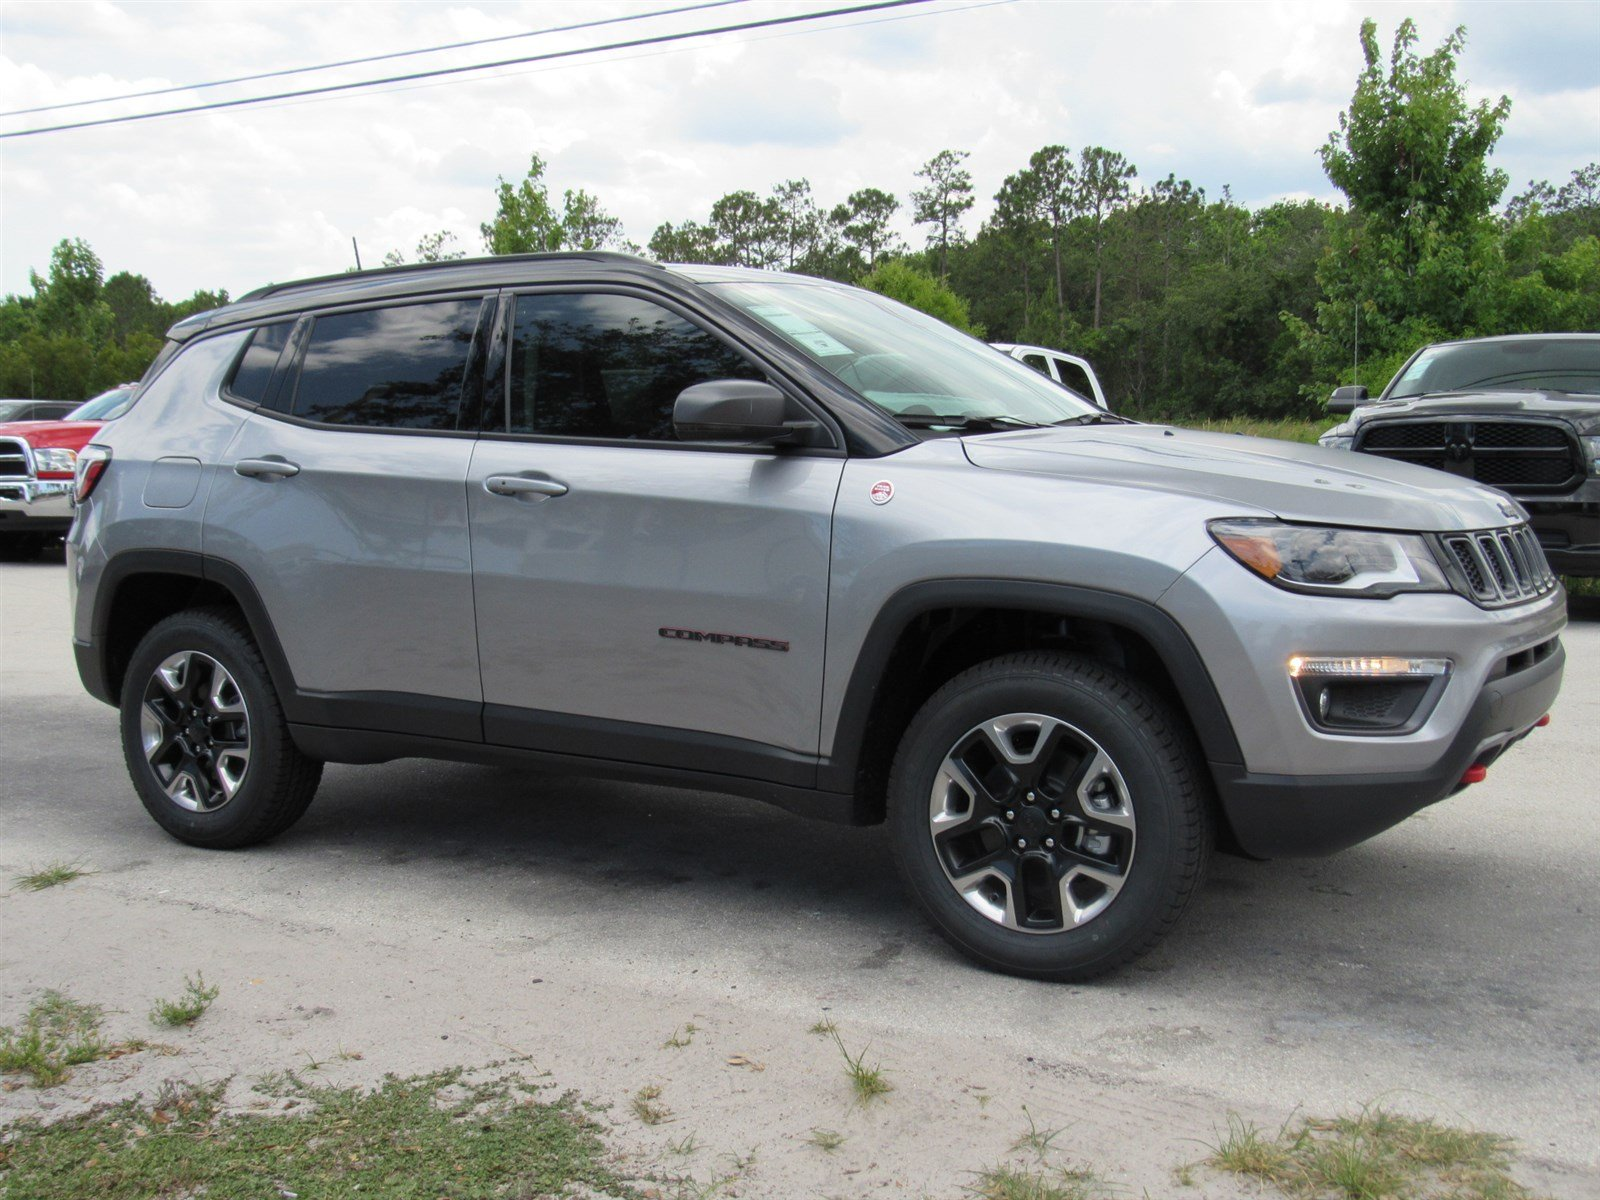 new 2017 jeep compass trailhawk sport utility in daytona beach j17566 daytona dodge chrysler. Black Bedroom Furniture Sets. Home Design Ideas